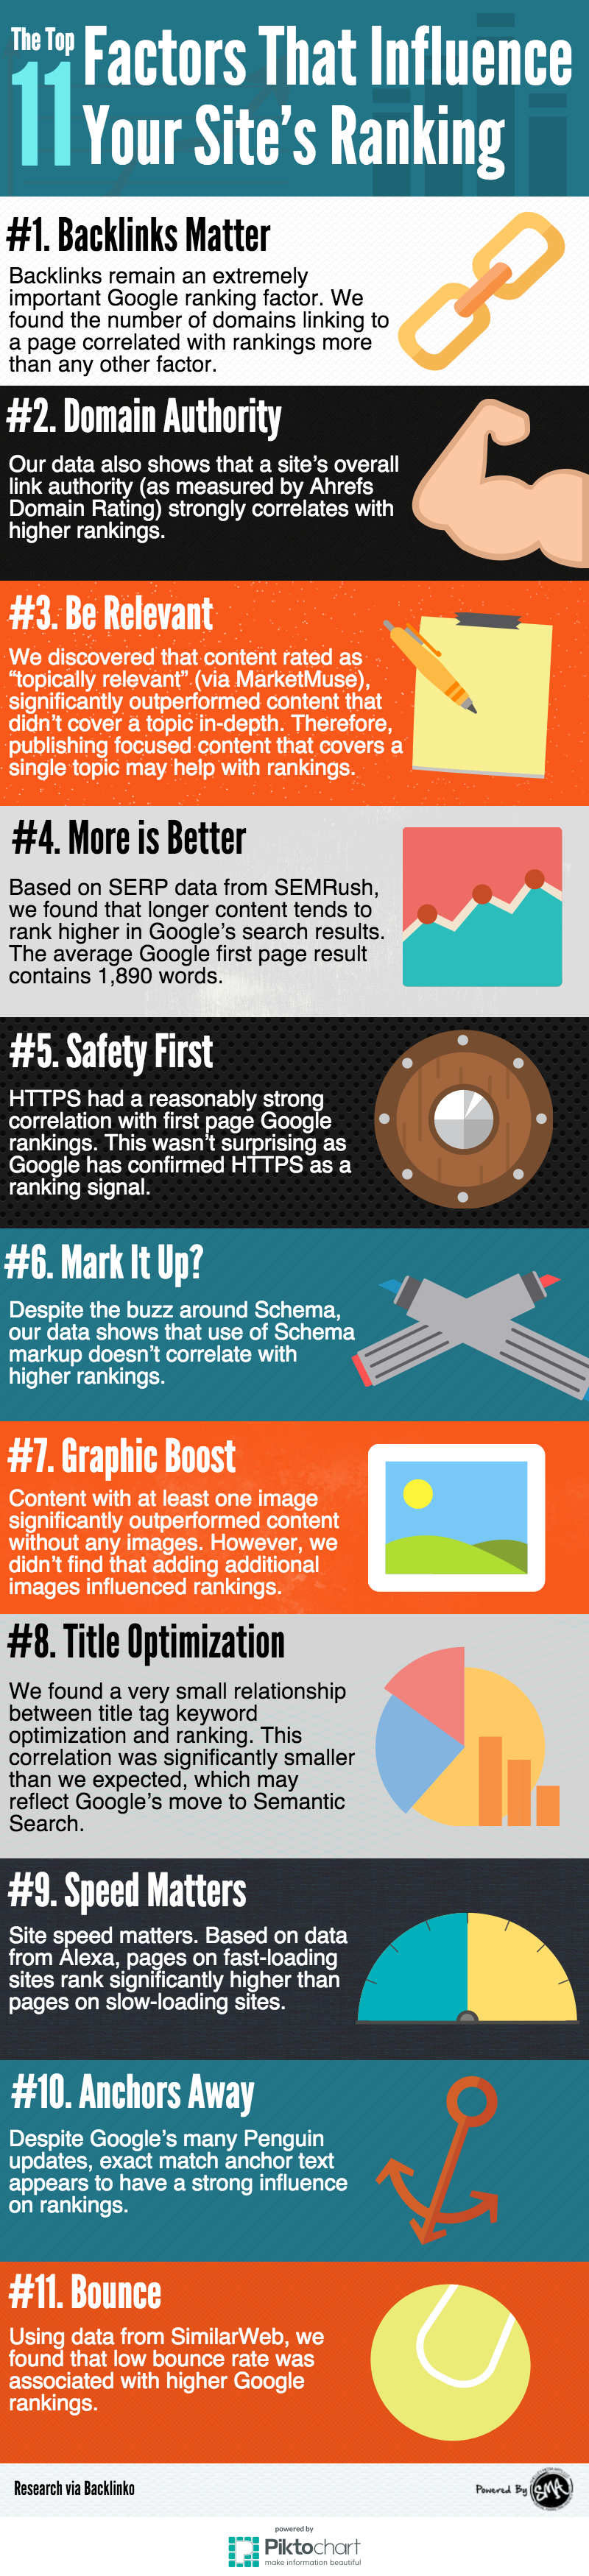 11-factors-that-influence-your-sites-ranking_1.png